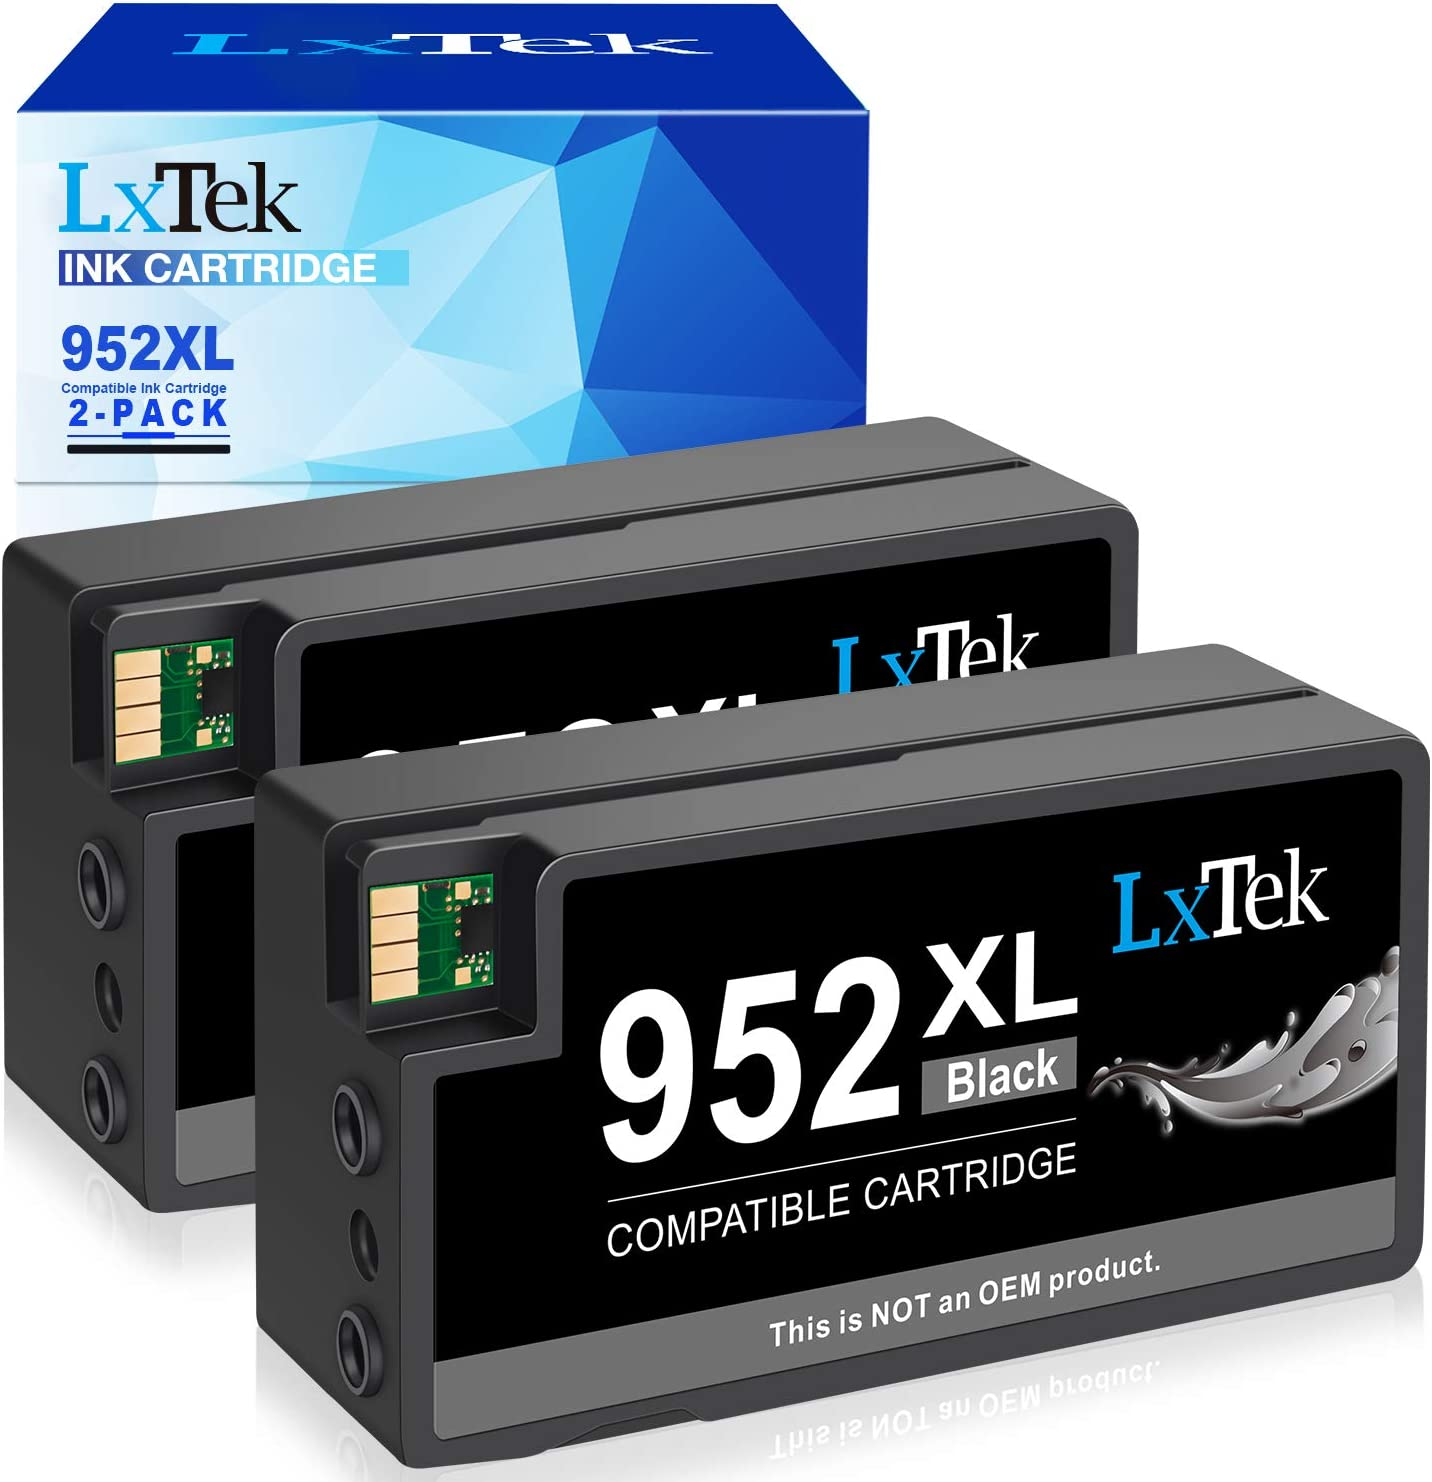 LxTek Compatible Ink Cartridge Replacement for HP 952XL 952 XL Ink cartridges to use with Officejet Pro 8710 8720 7740 8740 7720 8715 8725 8702 8216 8210 Printer (2 Black)